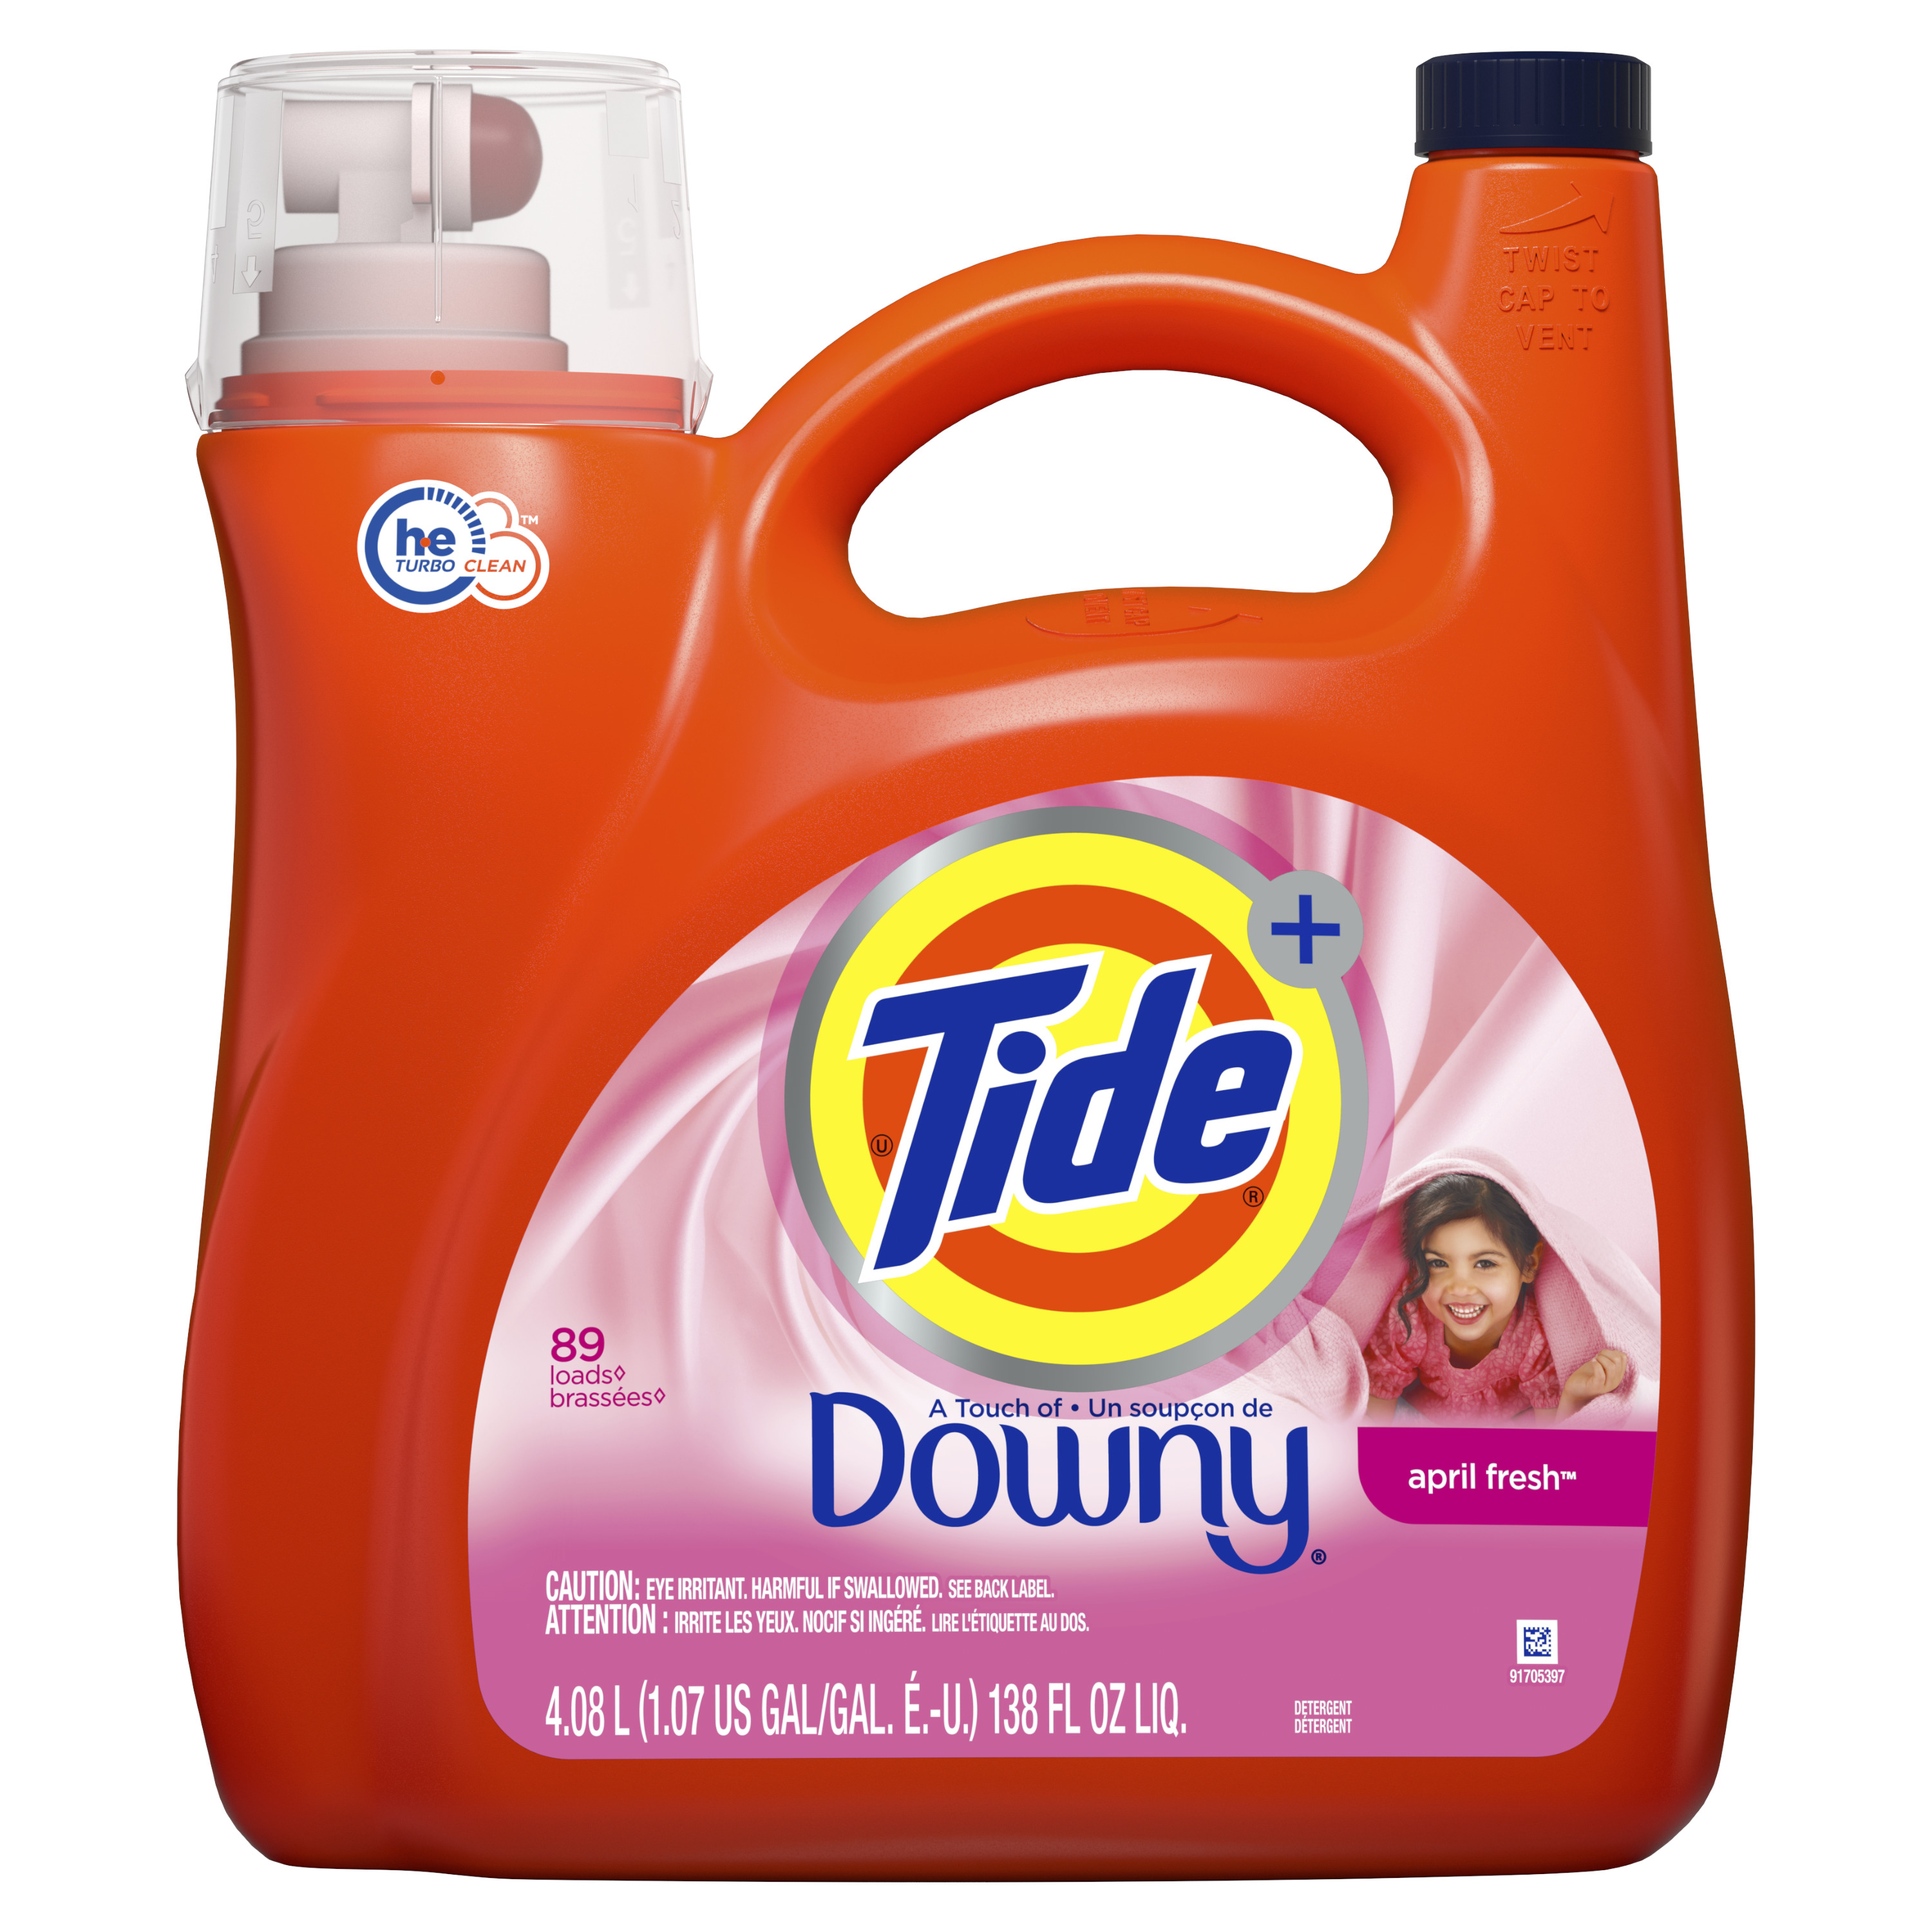 Tide Liquid Laundry Detergent with a Touch of Downy, April Fresh, 89 Loads 138 fl oz